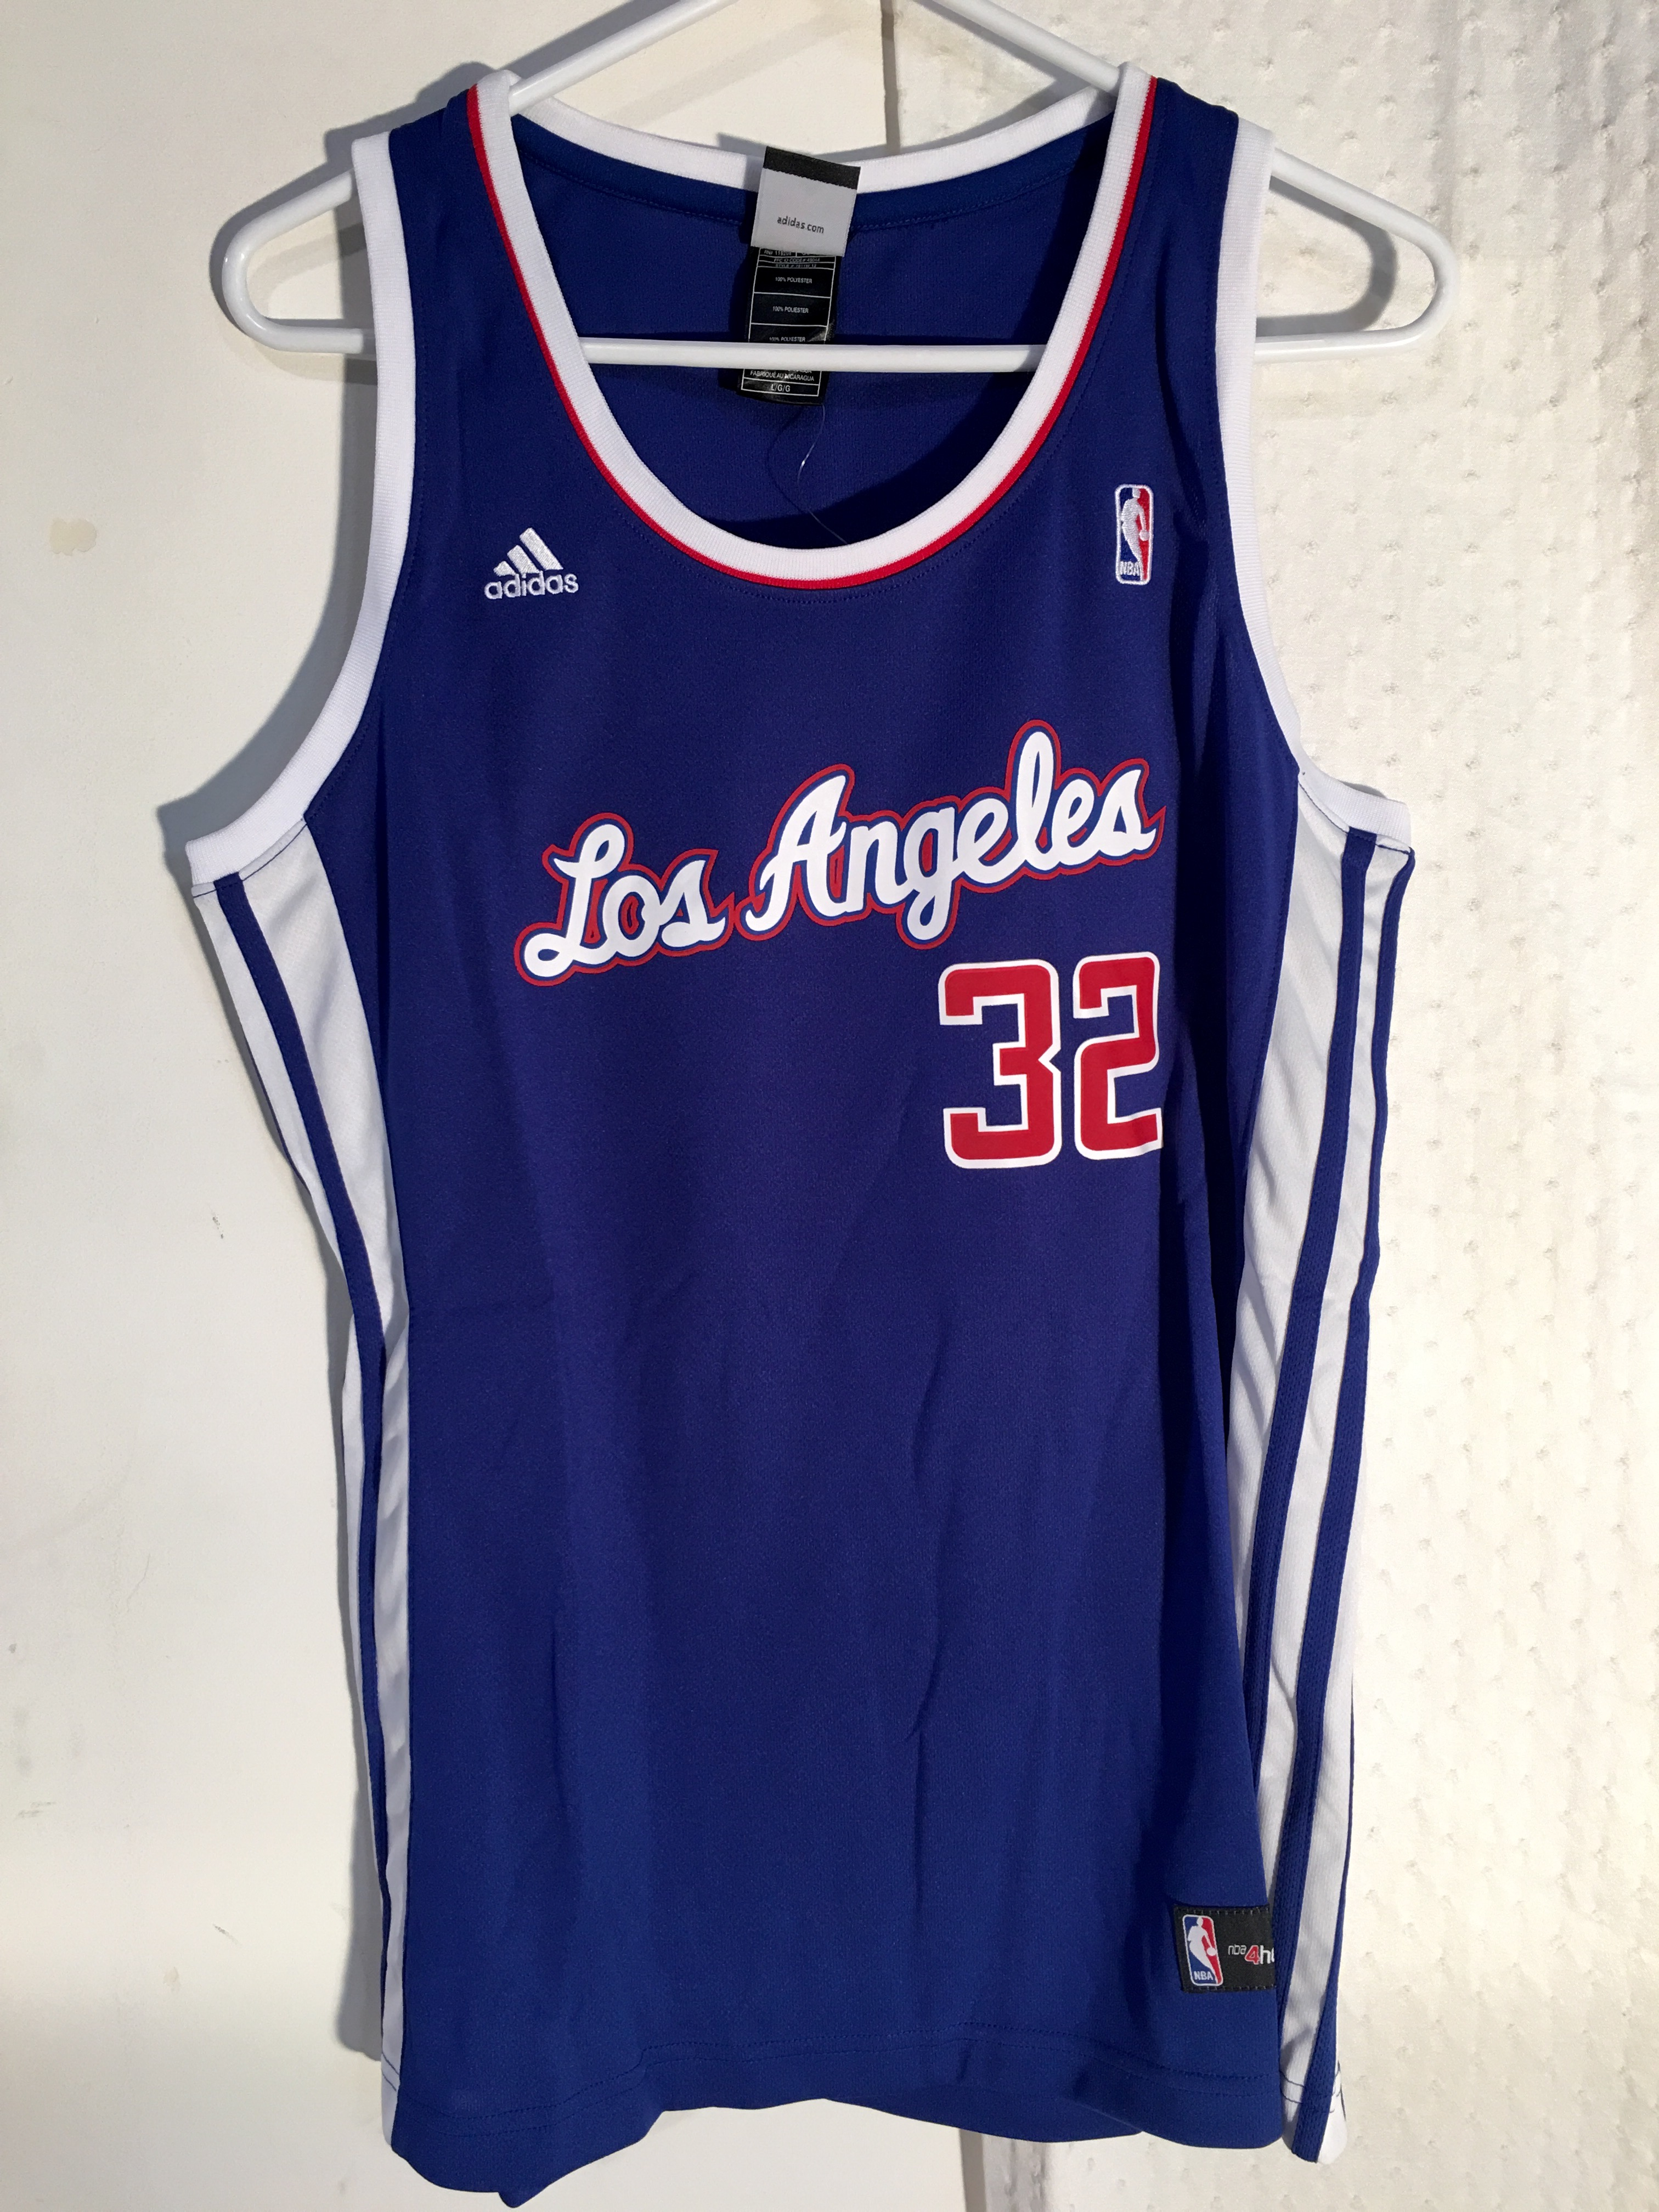 Adidas Women s NBA Jersey Los Angeles Clippers Blake Griffin Blue sz ... a9b842ae84